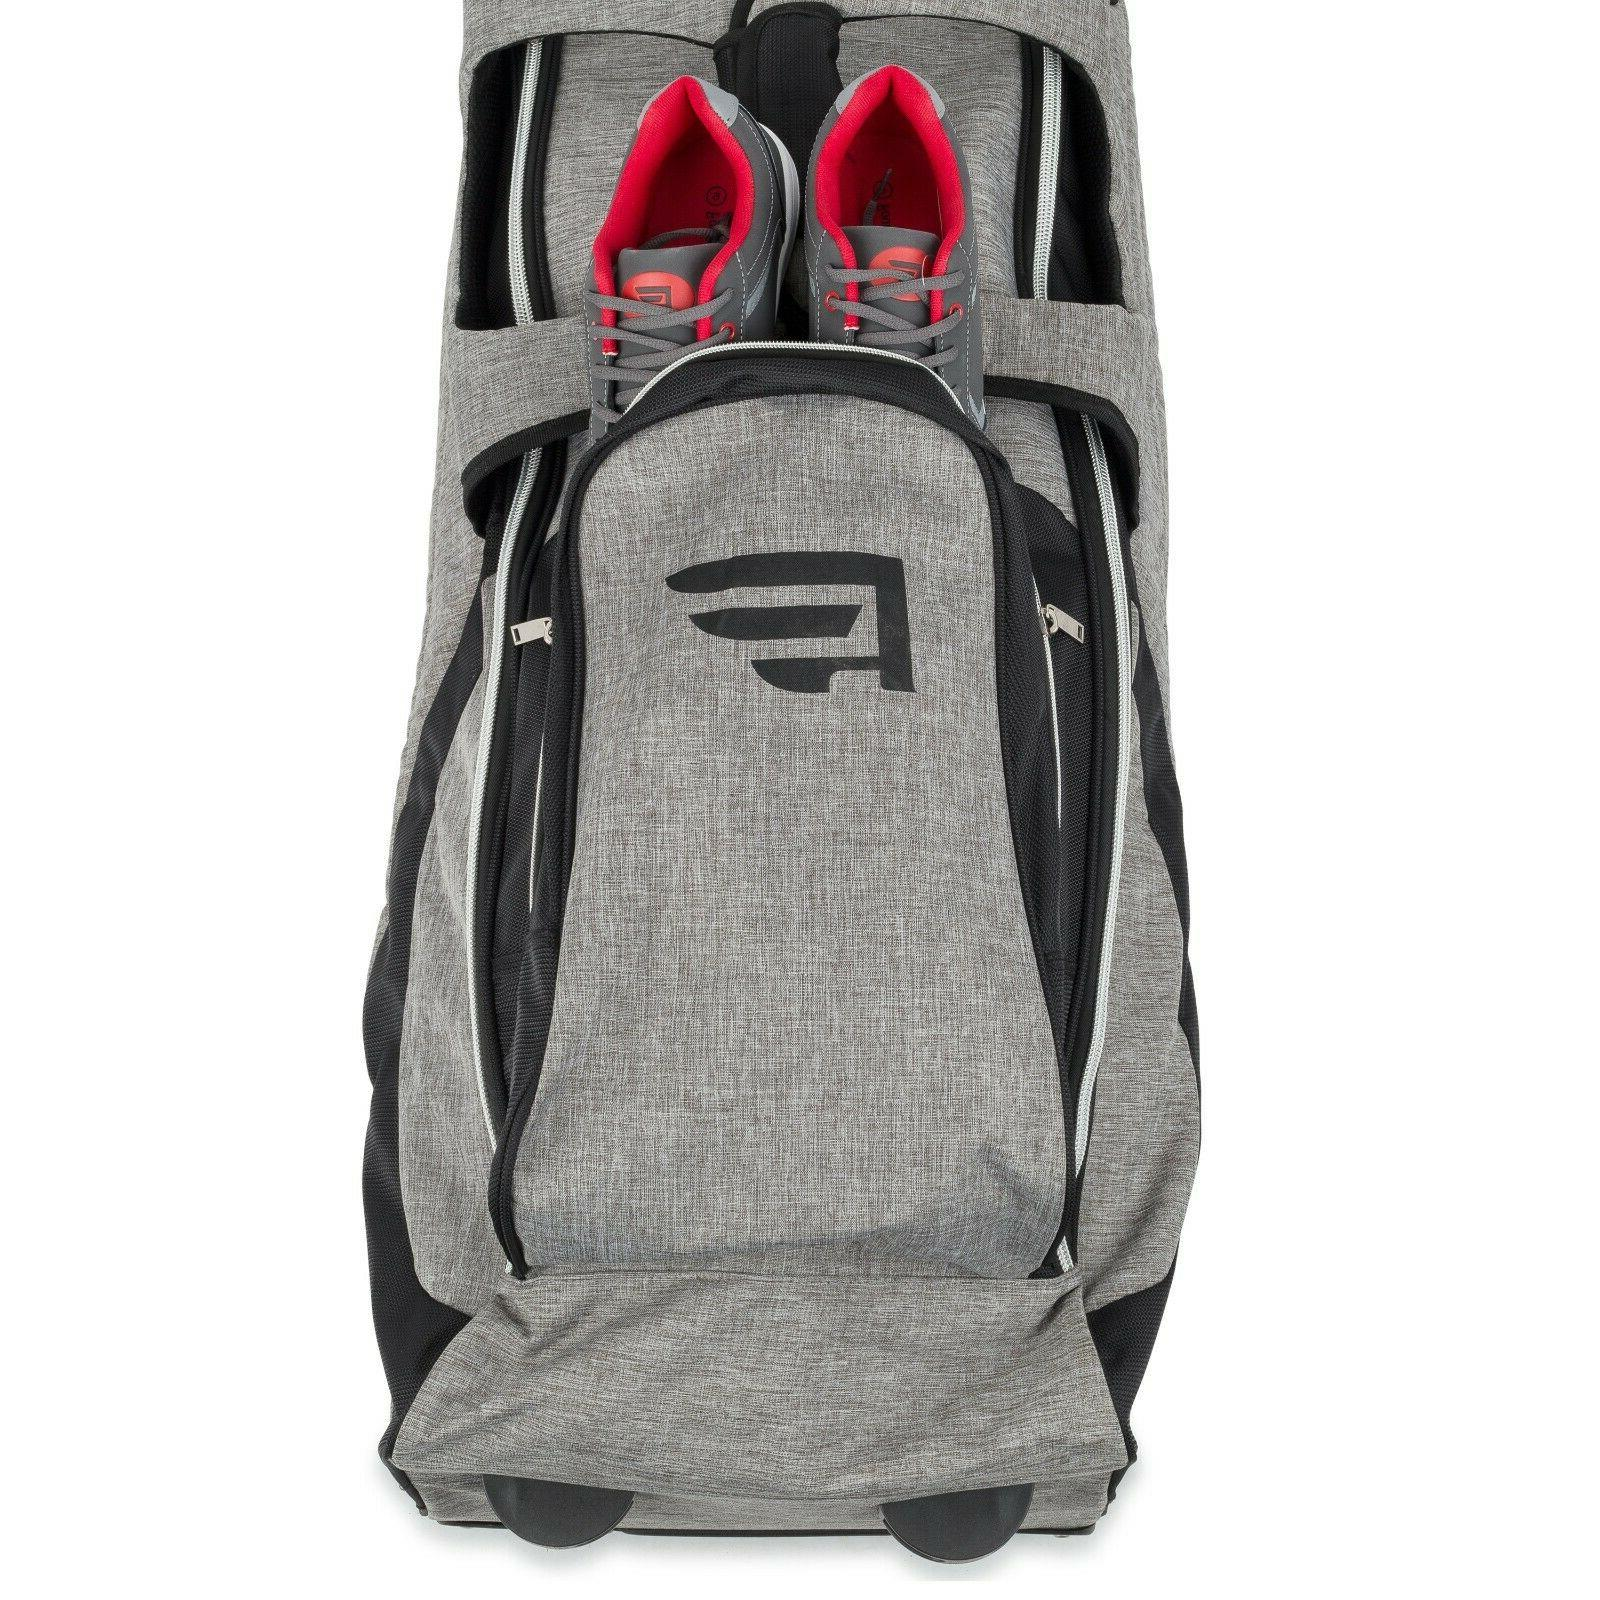 Founders Club Bag Travel Padded Golf